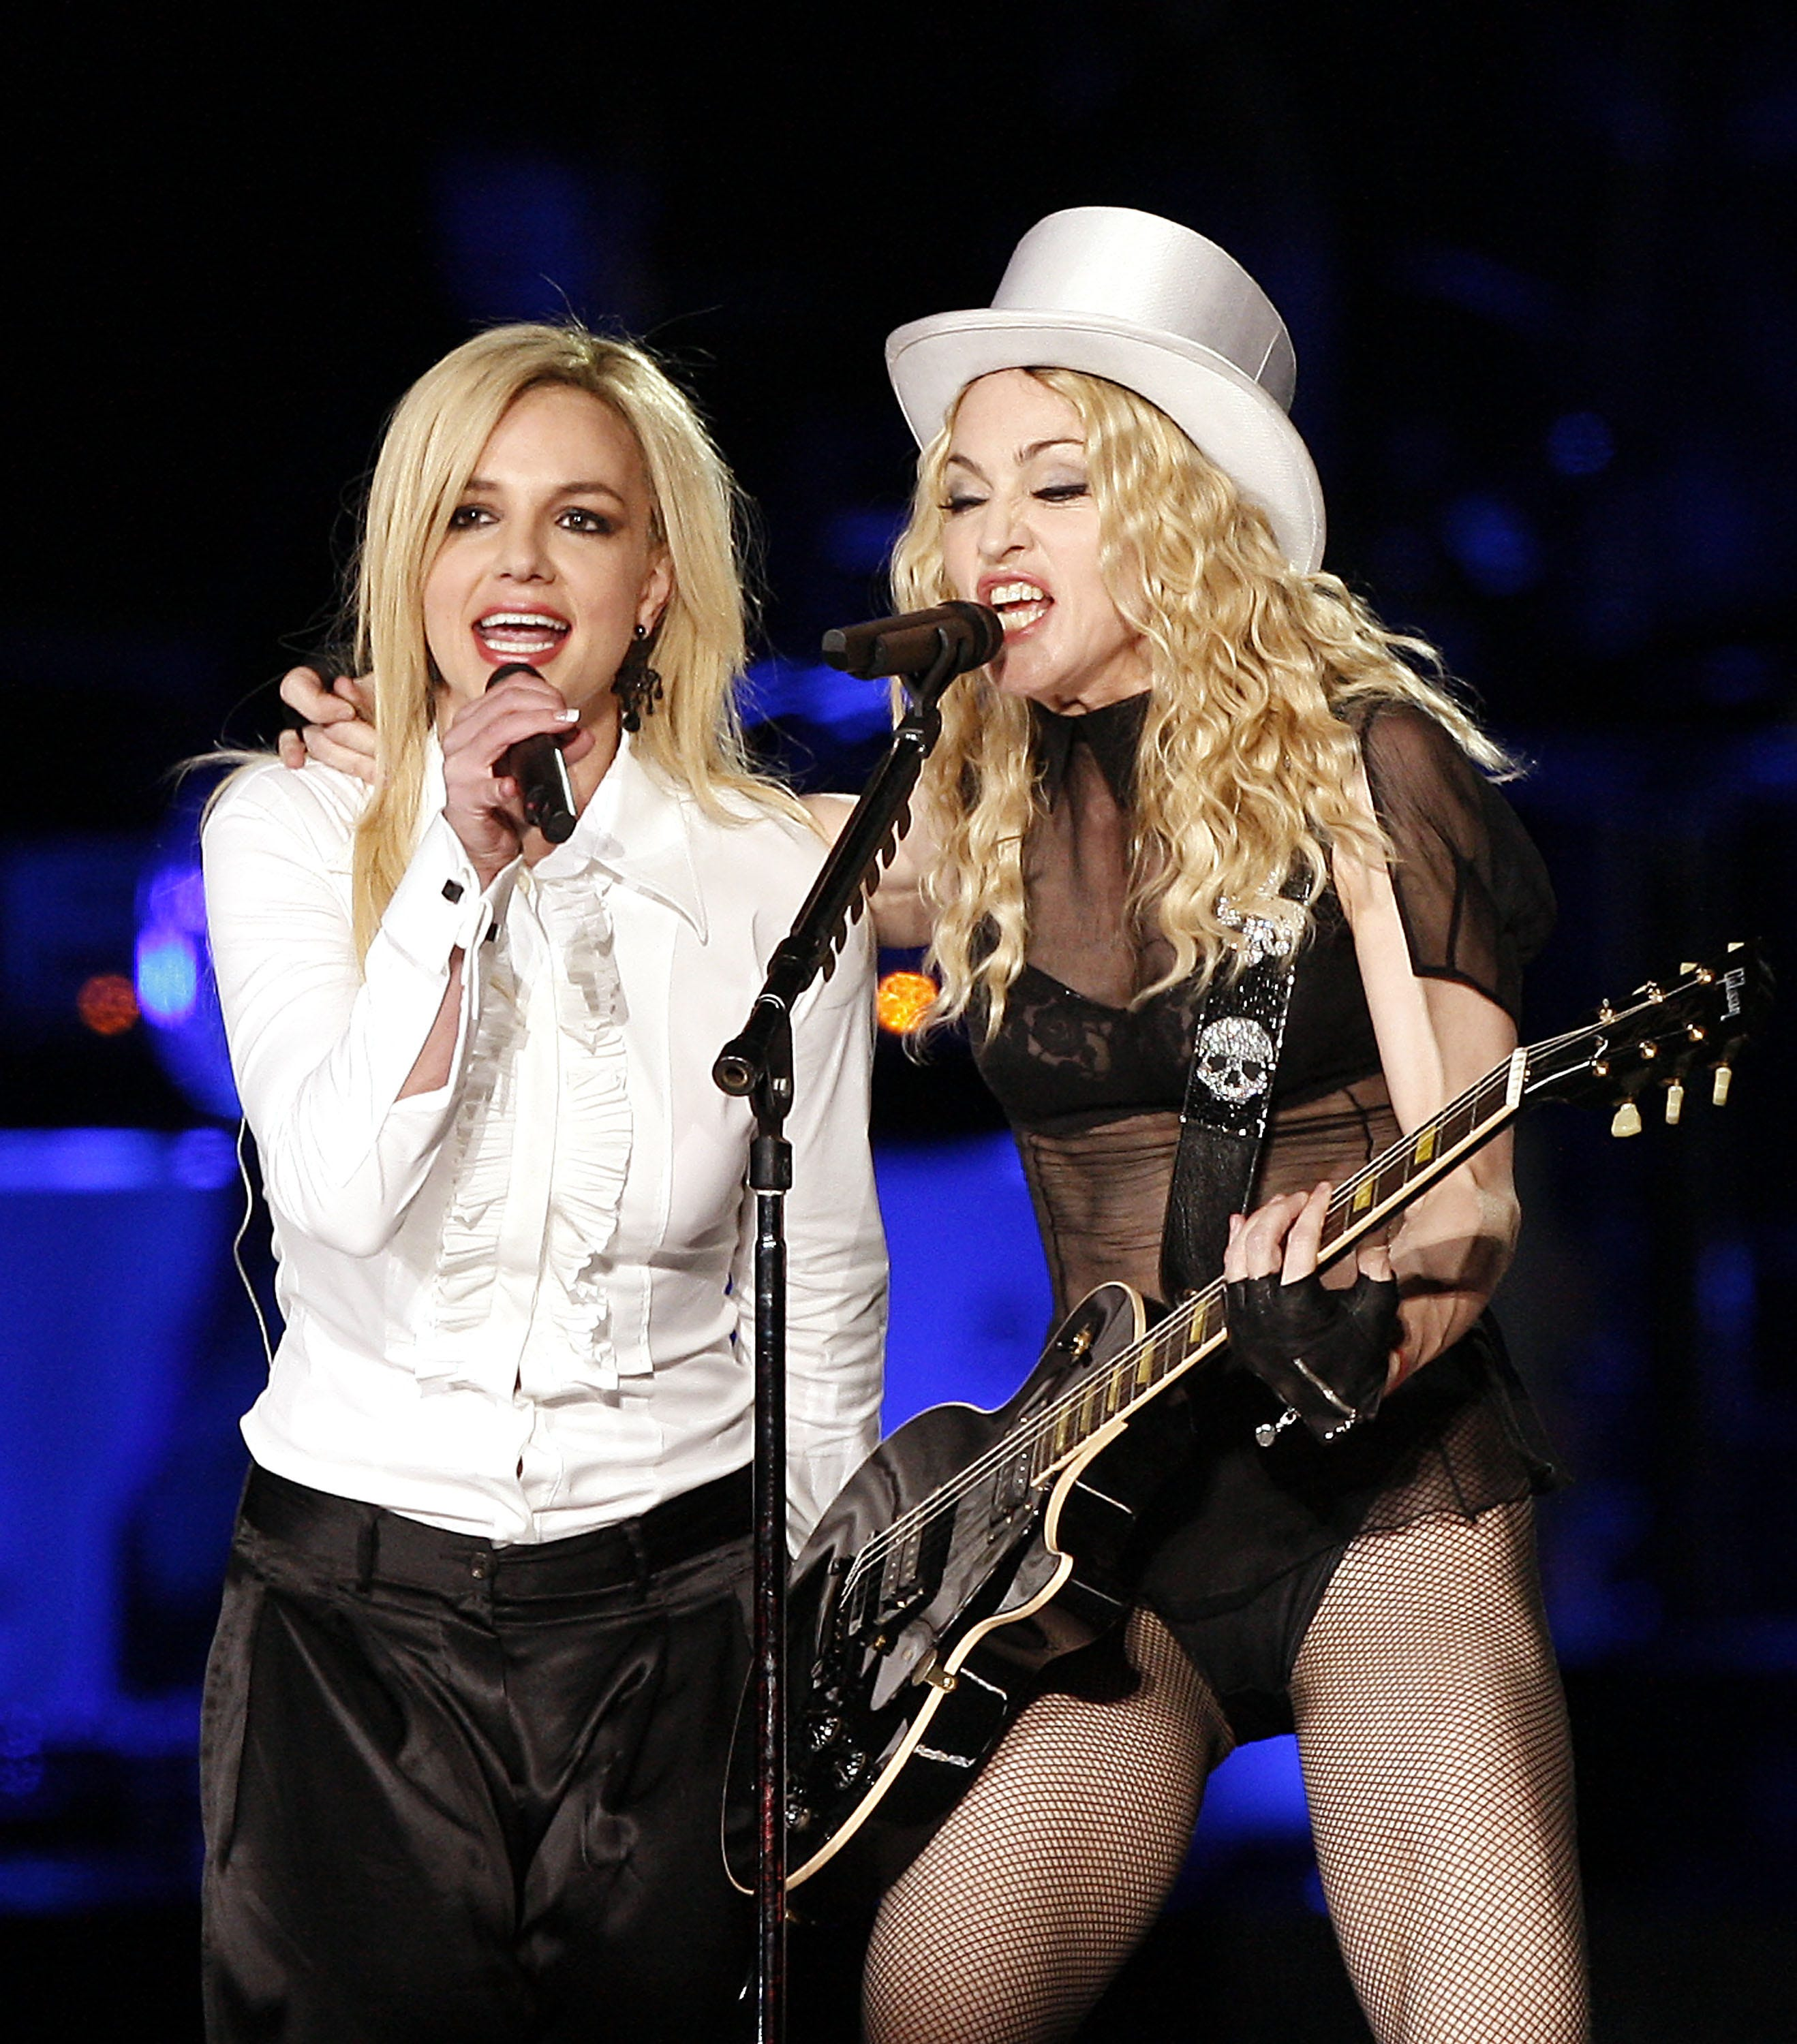 Madonna backs Britney Spears in fiery post:  This is a violation of human rights!